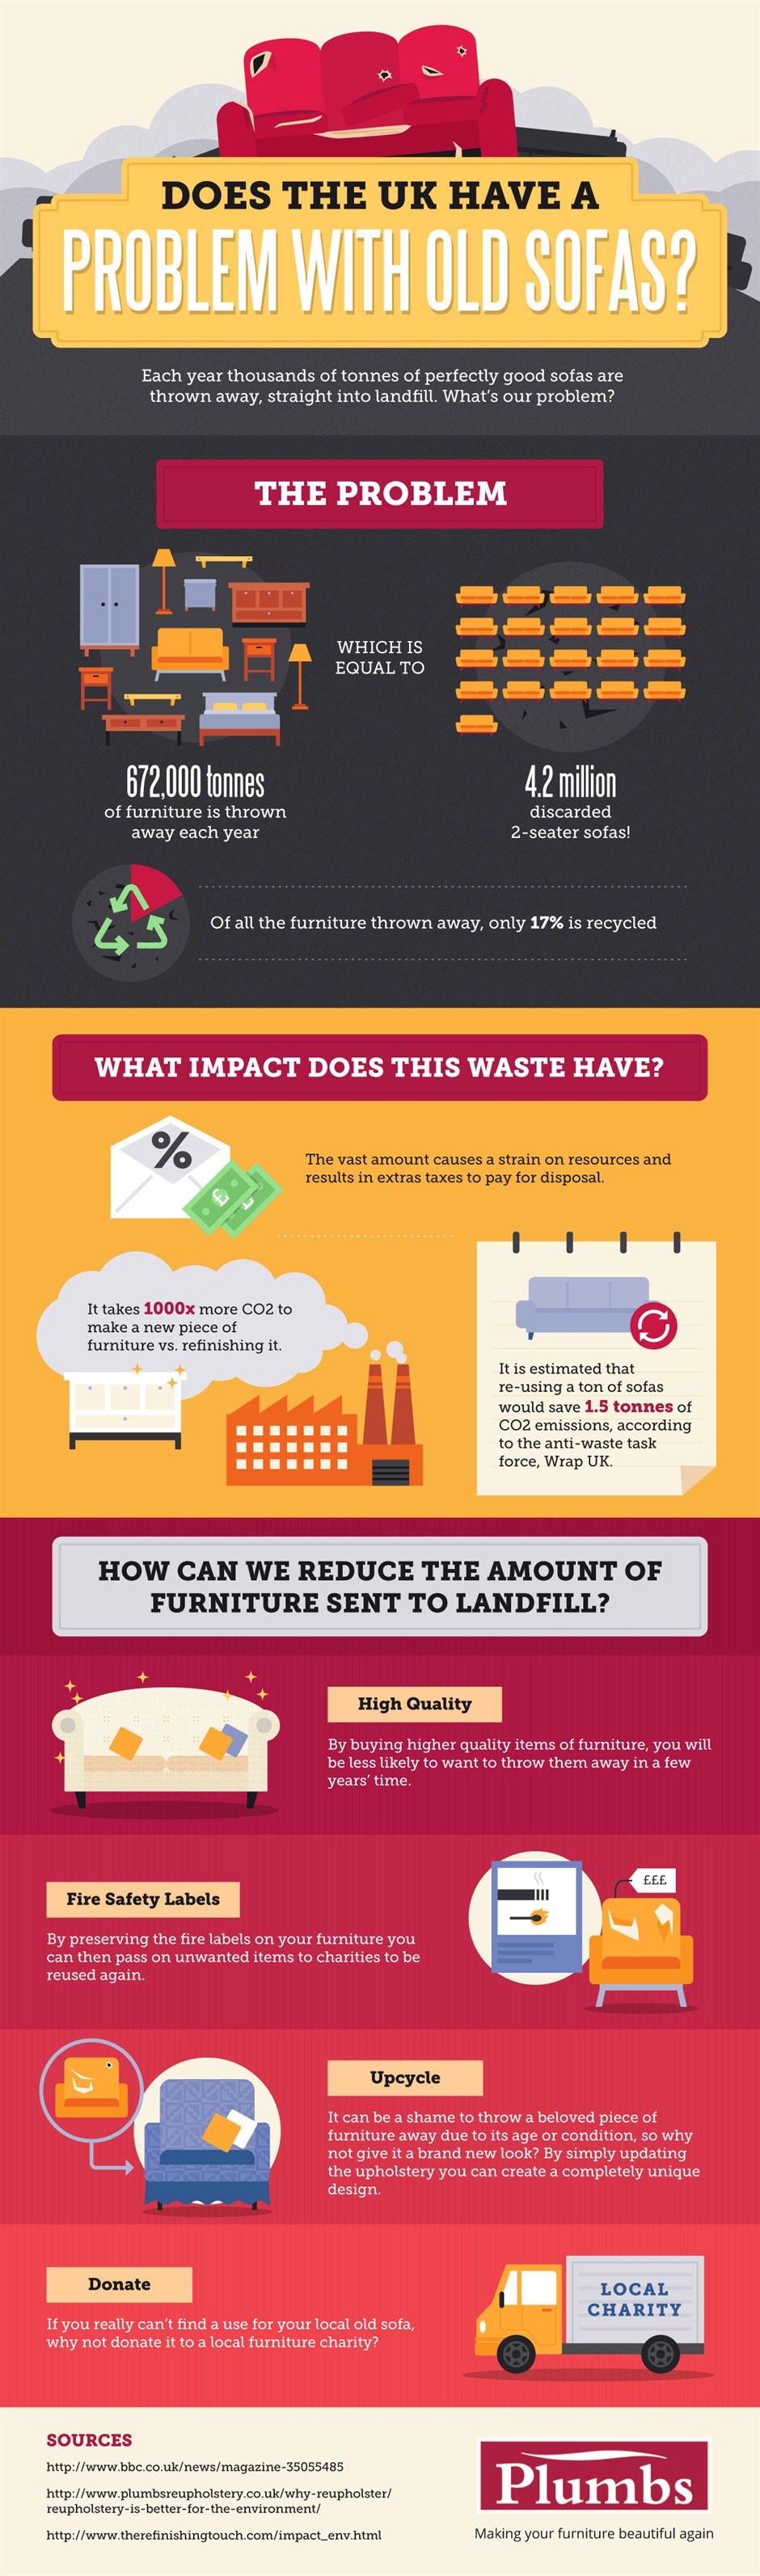 sofa-waste-infographic_940x3187 (1)